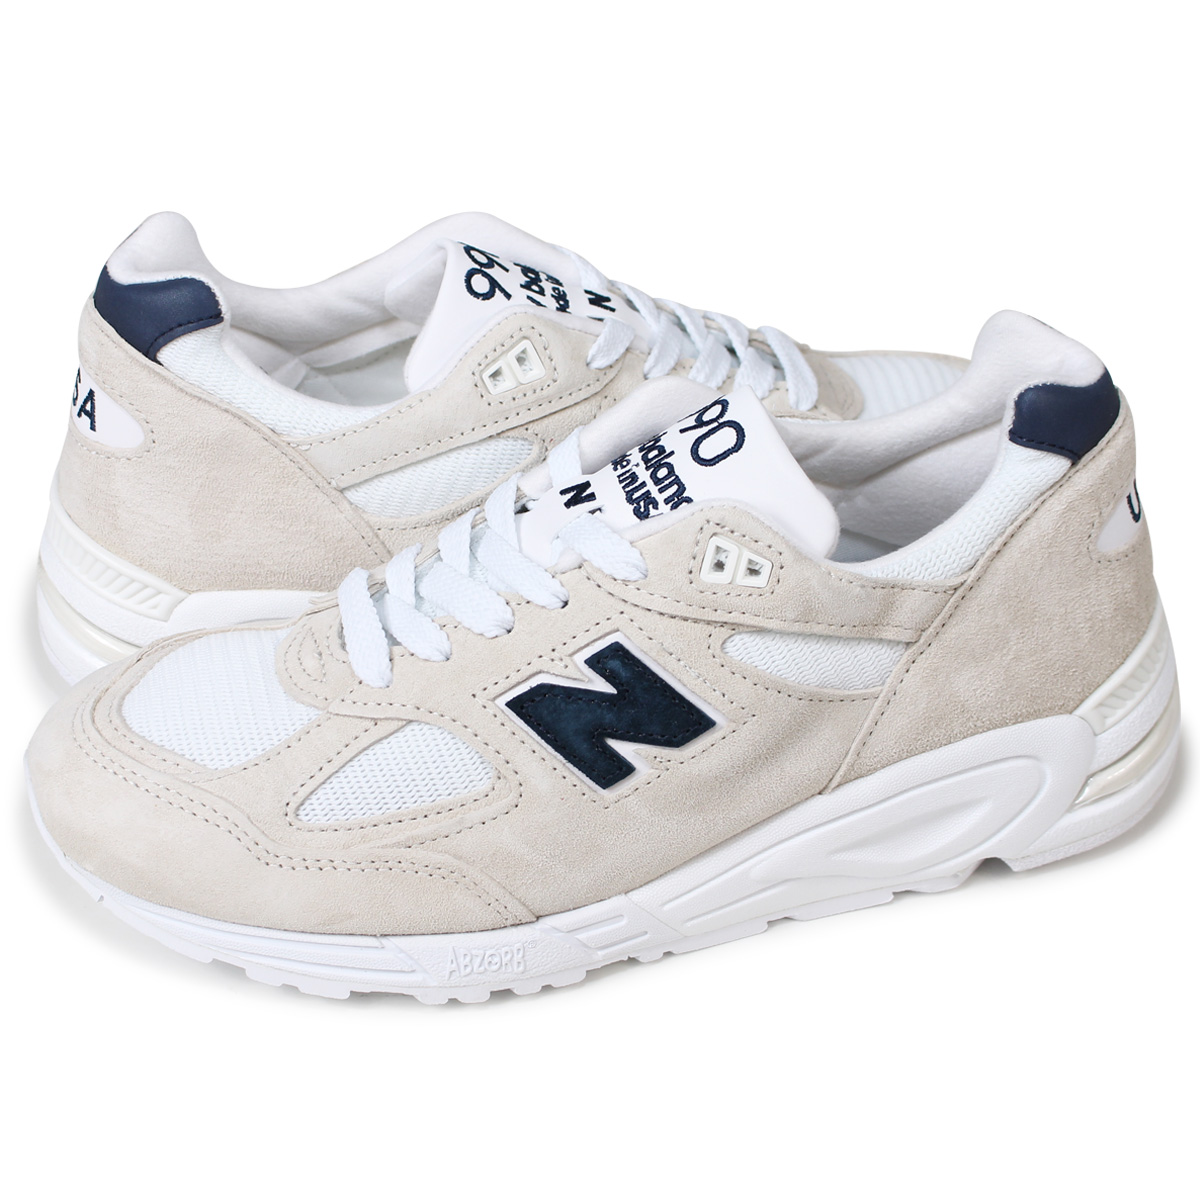 a0593211fae Whats up Sports: new balance M990WE2 뉴발란스 990 맨즈 스니커 D ...